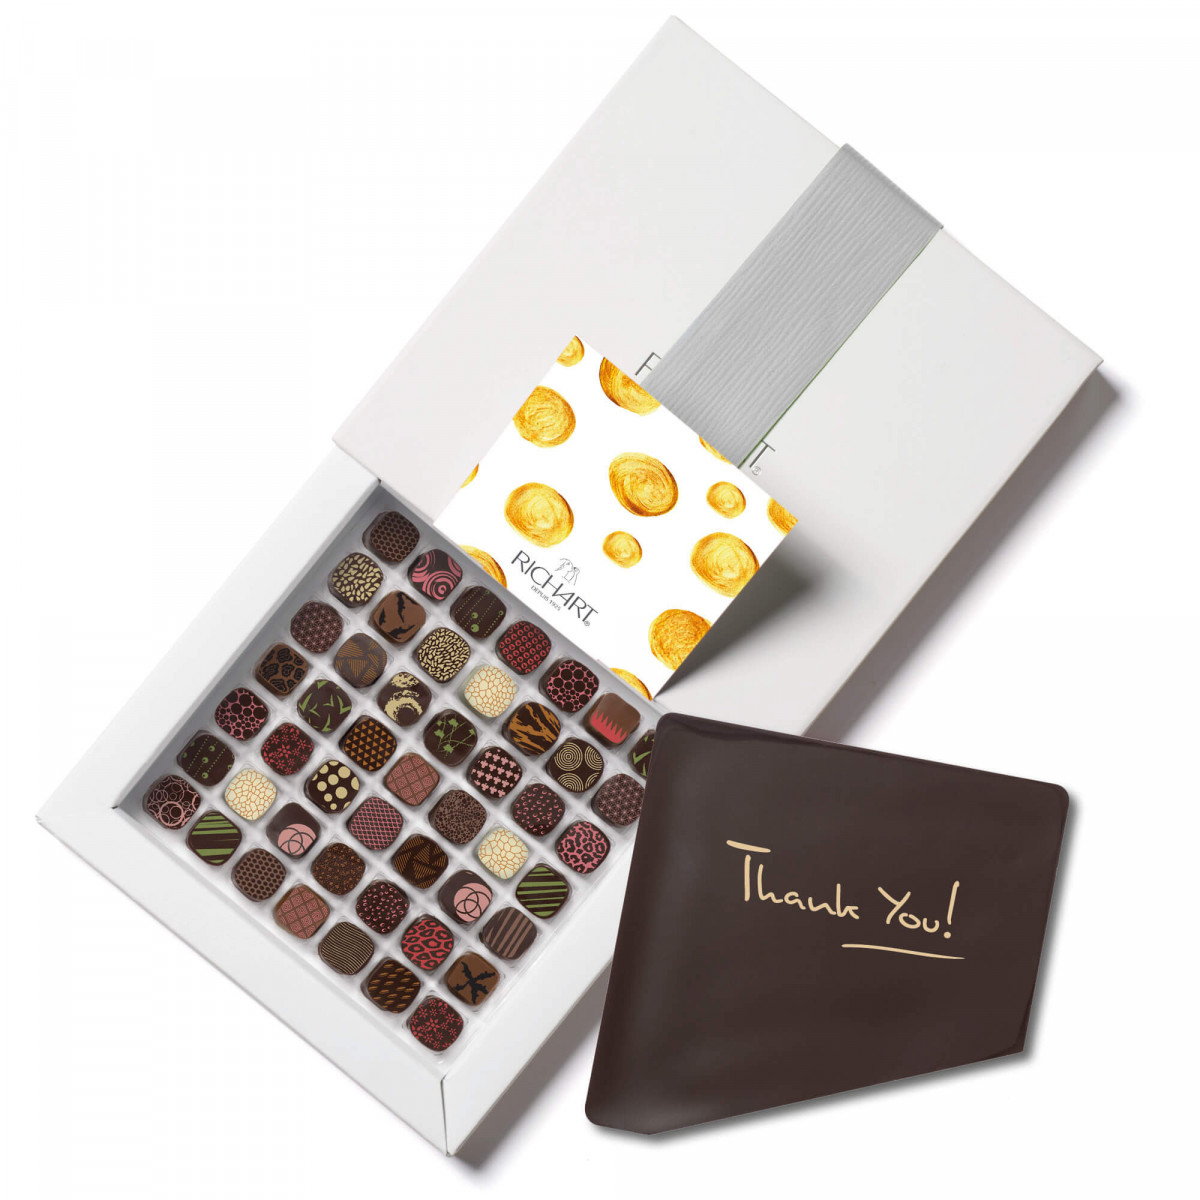 Petits RICHART Intense Thank You Box of 49 filled chocolates